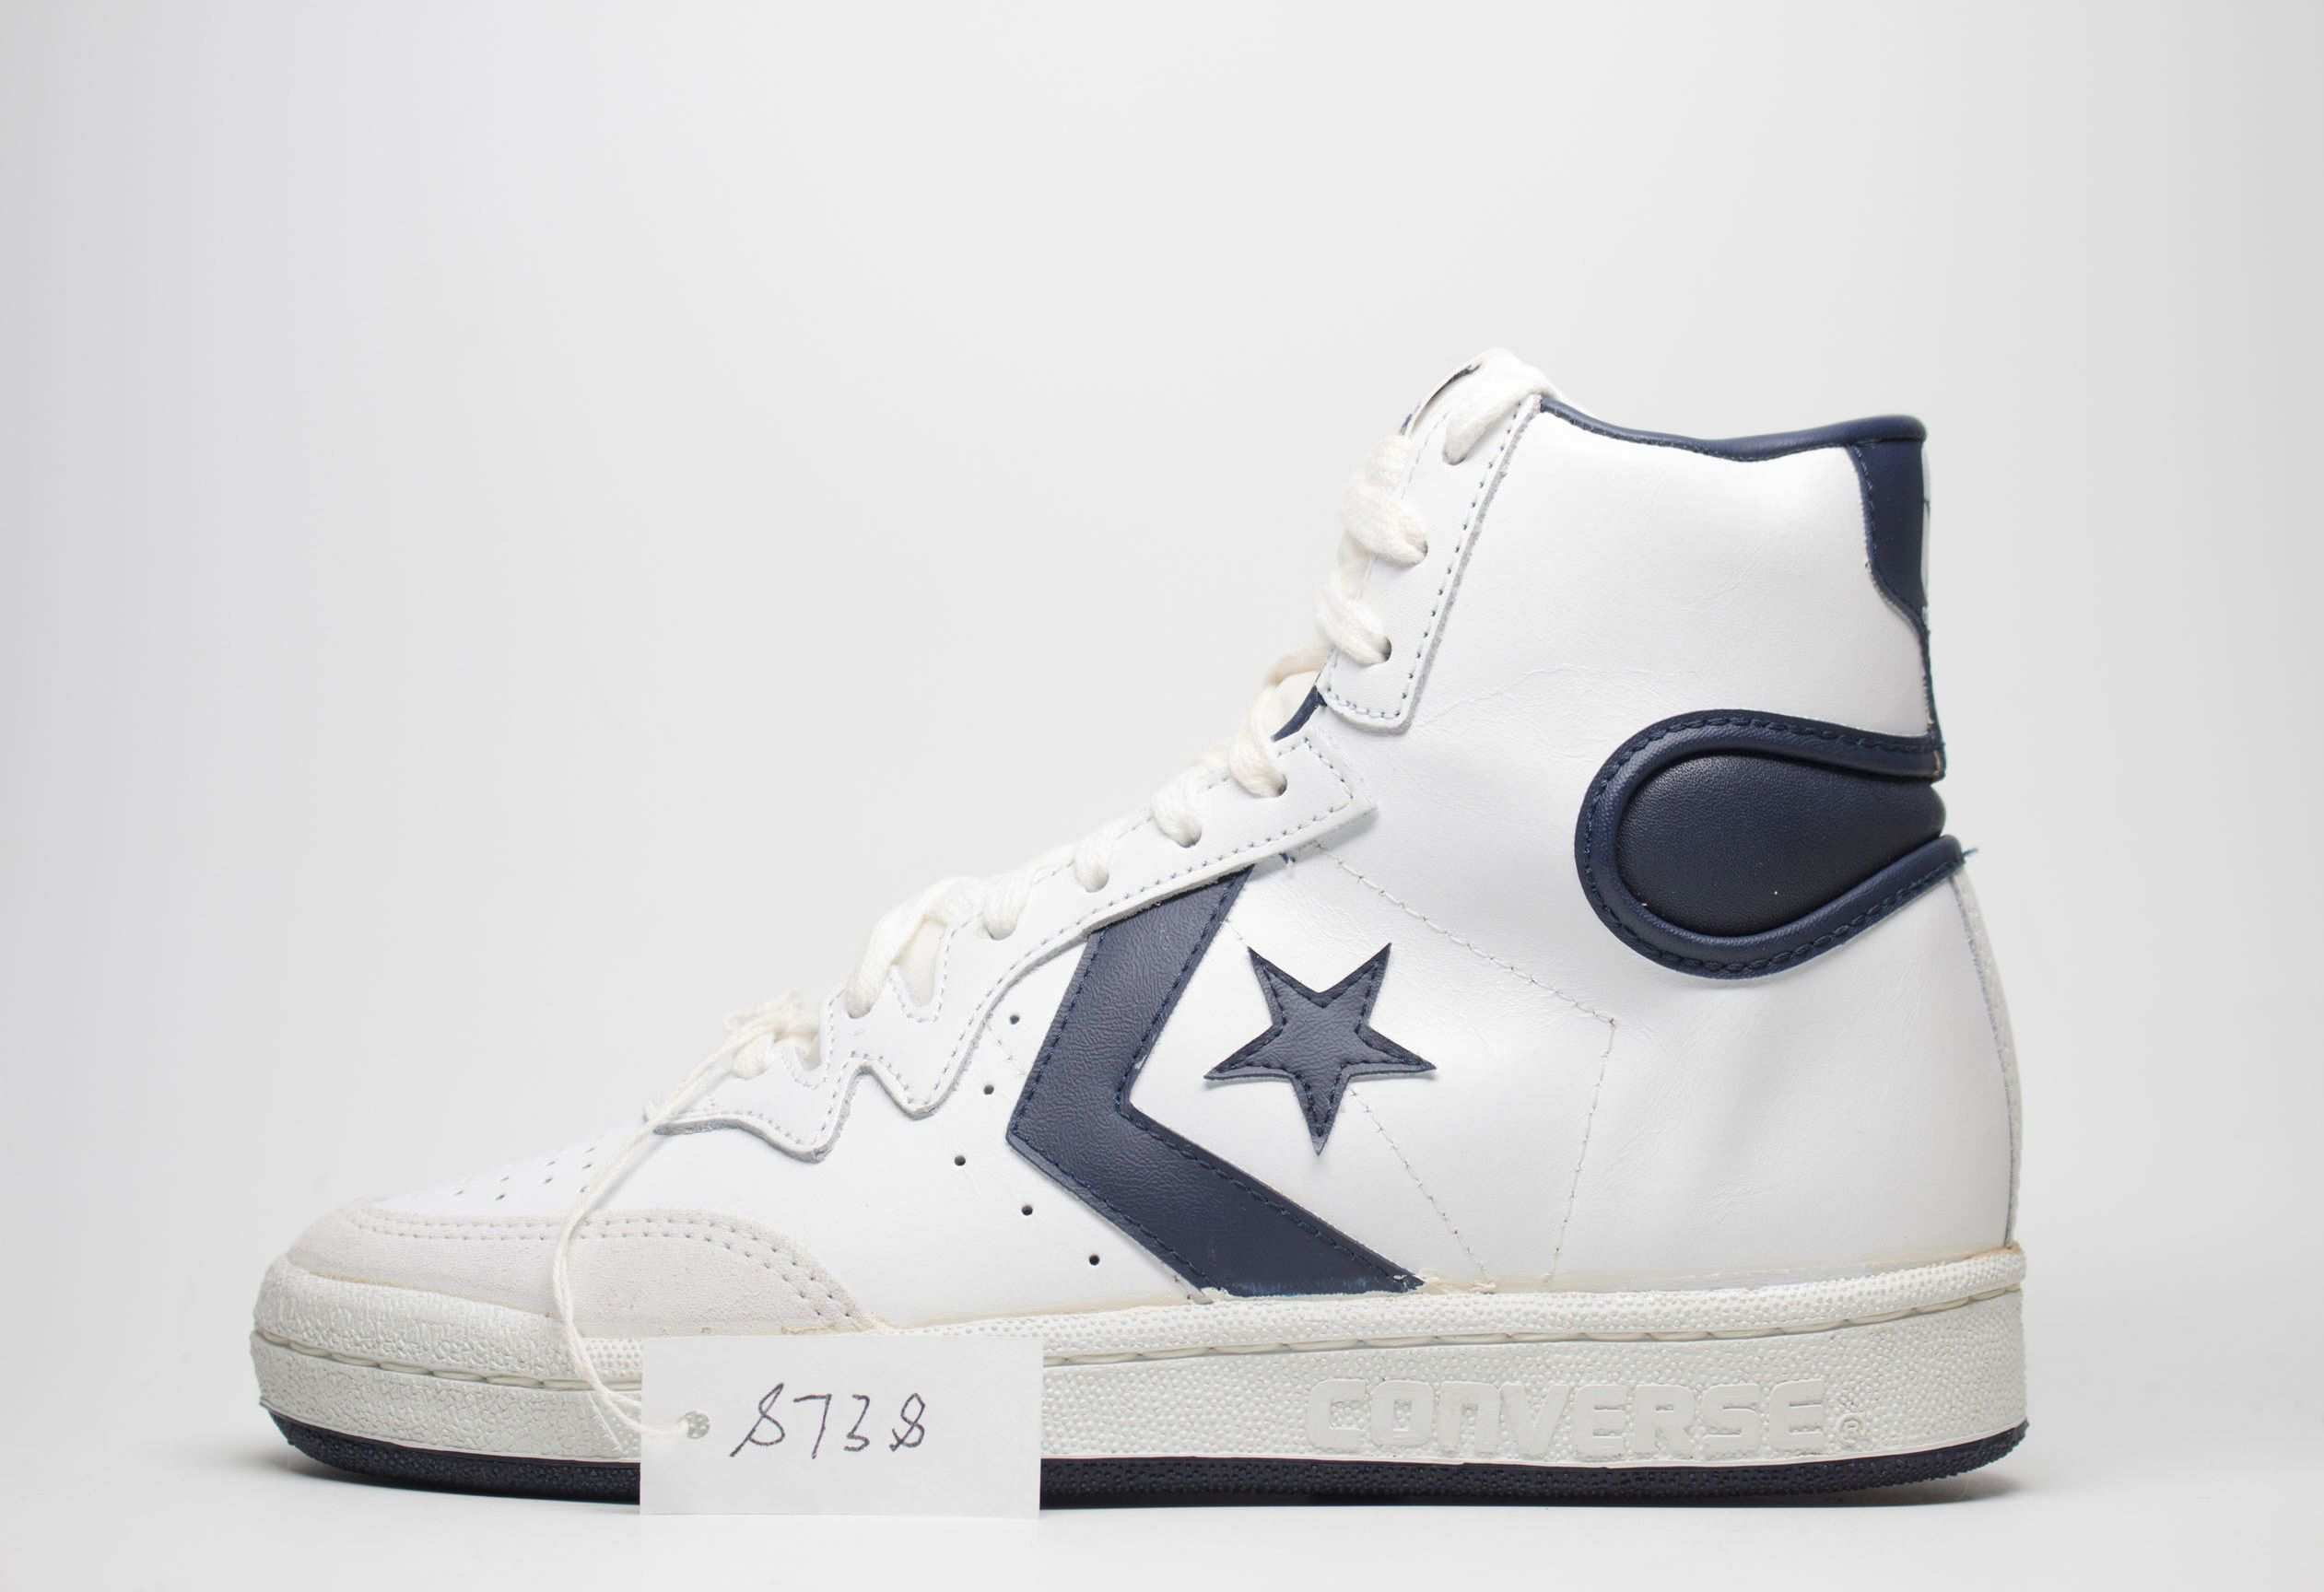 15 Images of Converse's Most Iconic Basketball Sneakers of